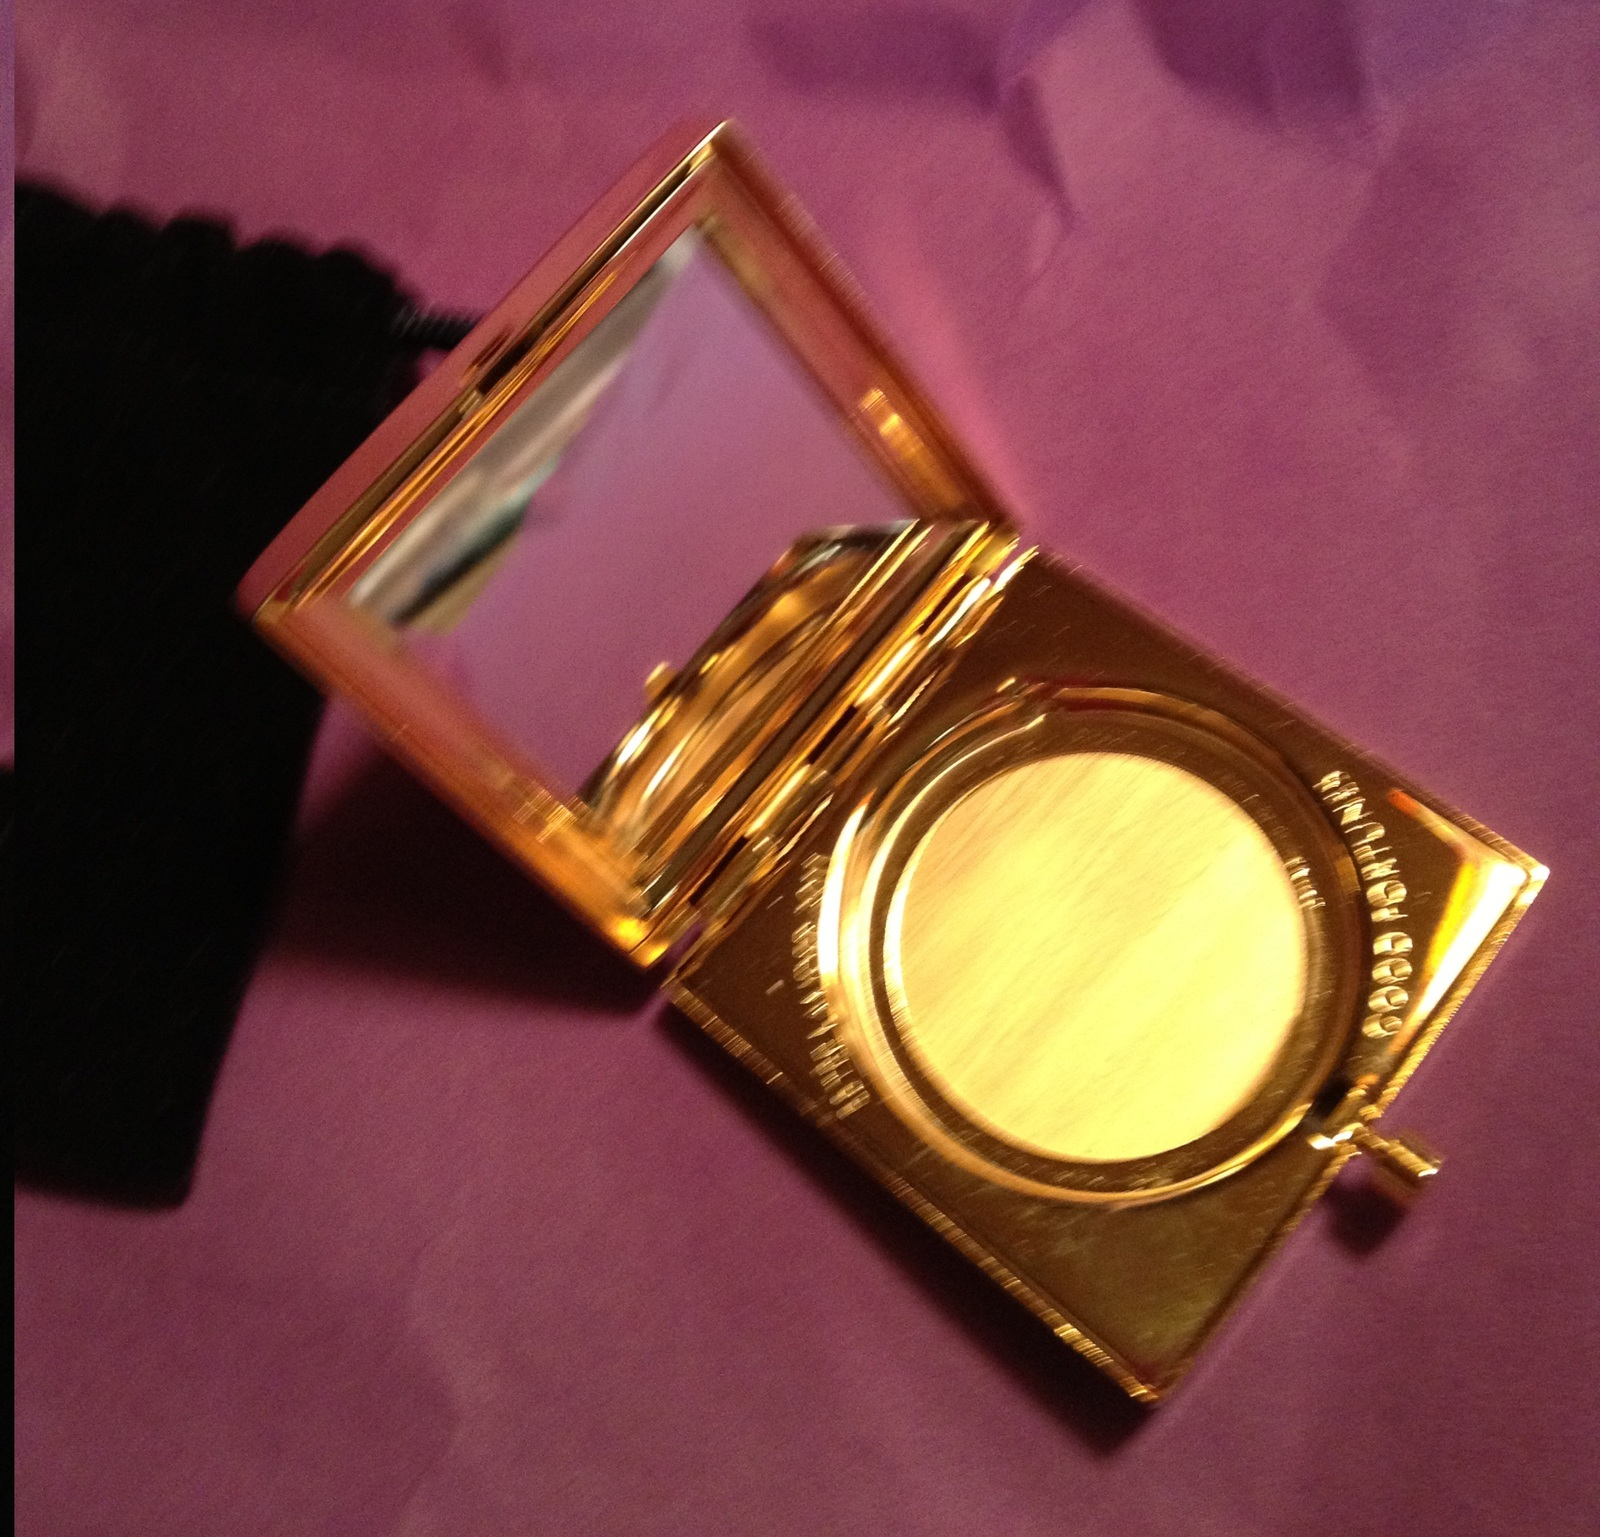 Estee Lauder ALL FORTUNES 2011 Compact - Malachite Lapis Tiger Eye Rose Quartz